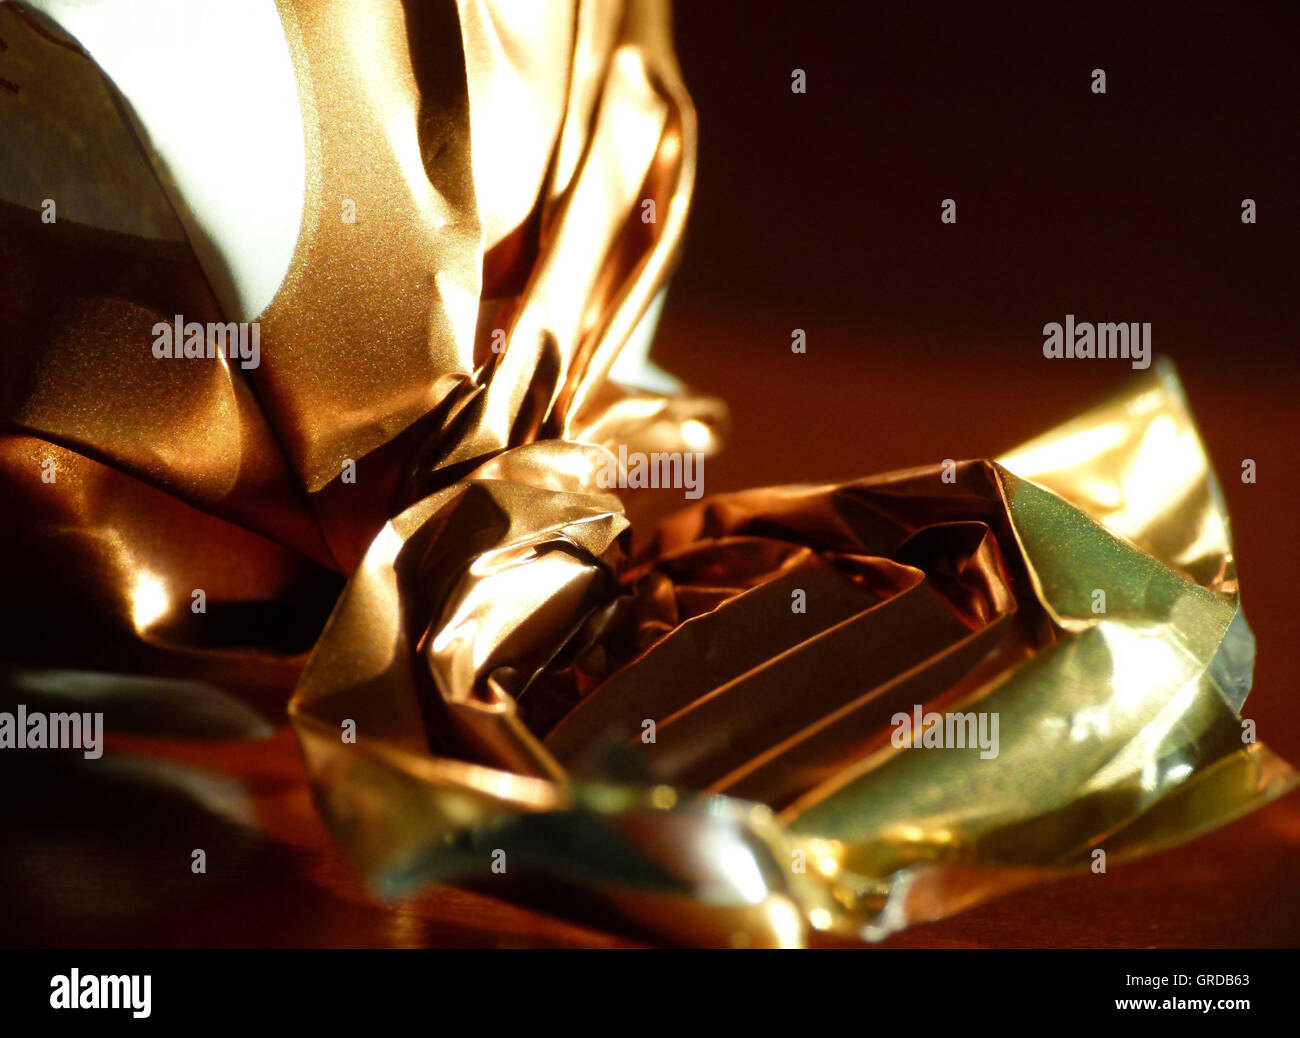 Crumpled Chocolates Paper, Candy Wrappers - Stock Image